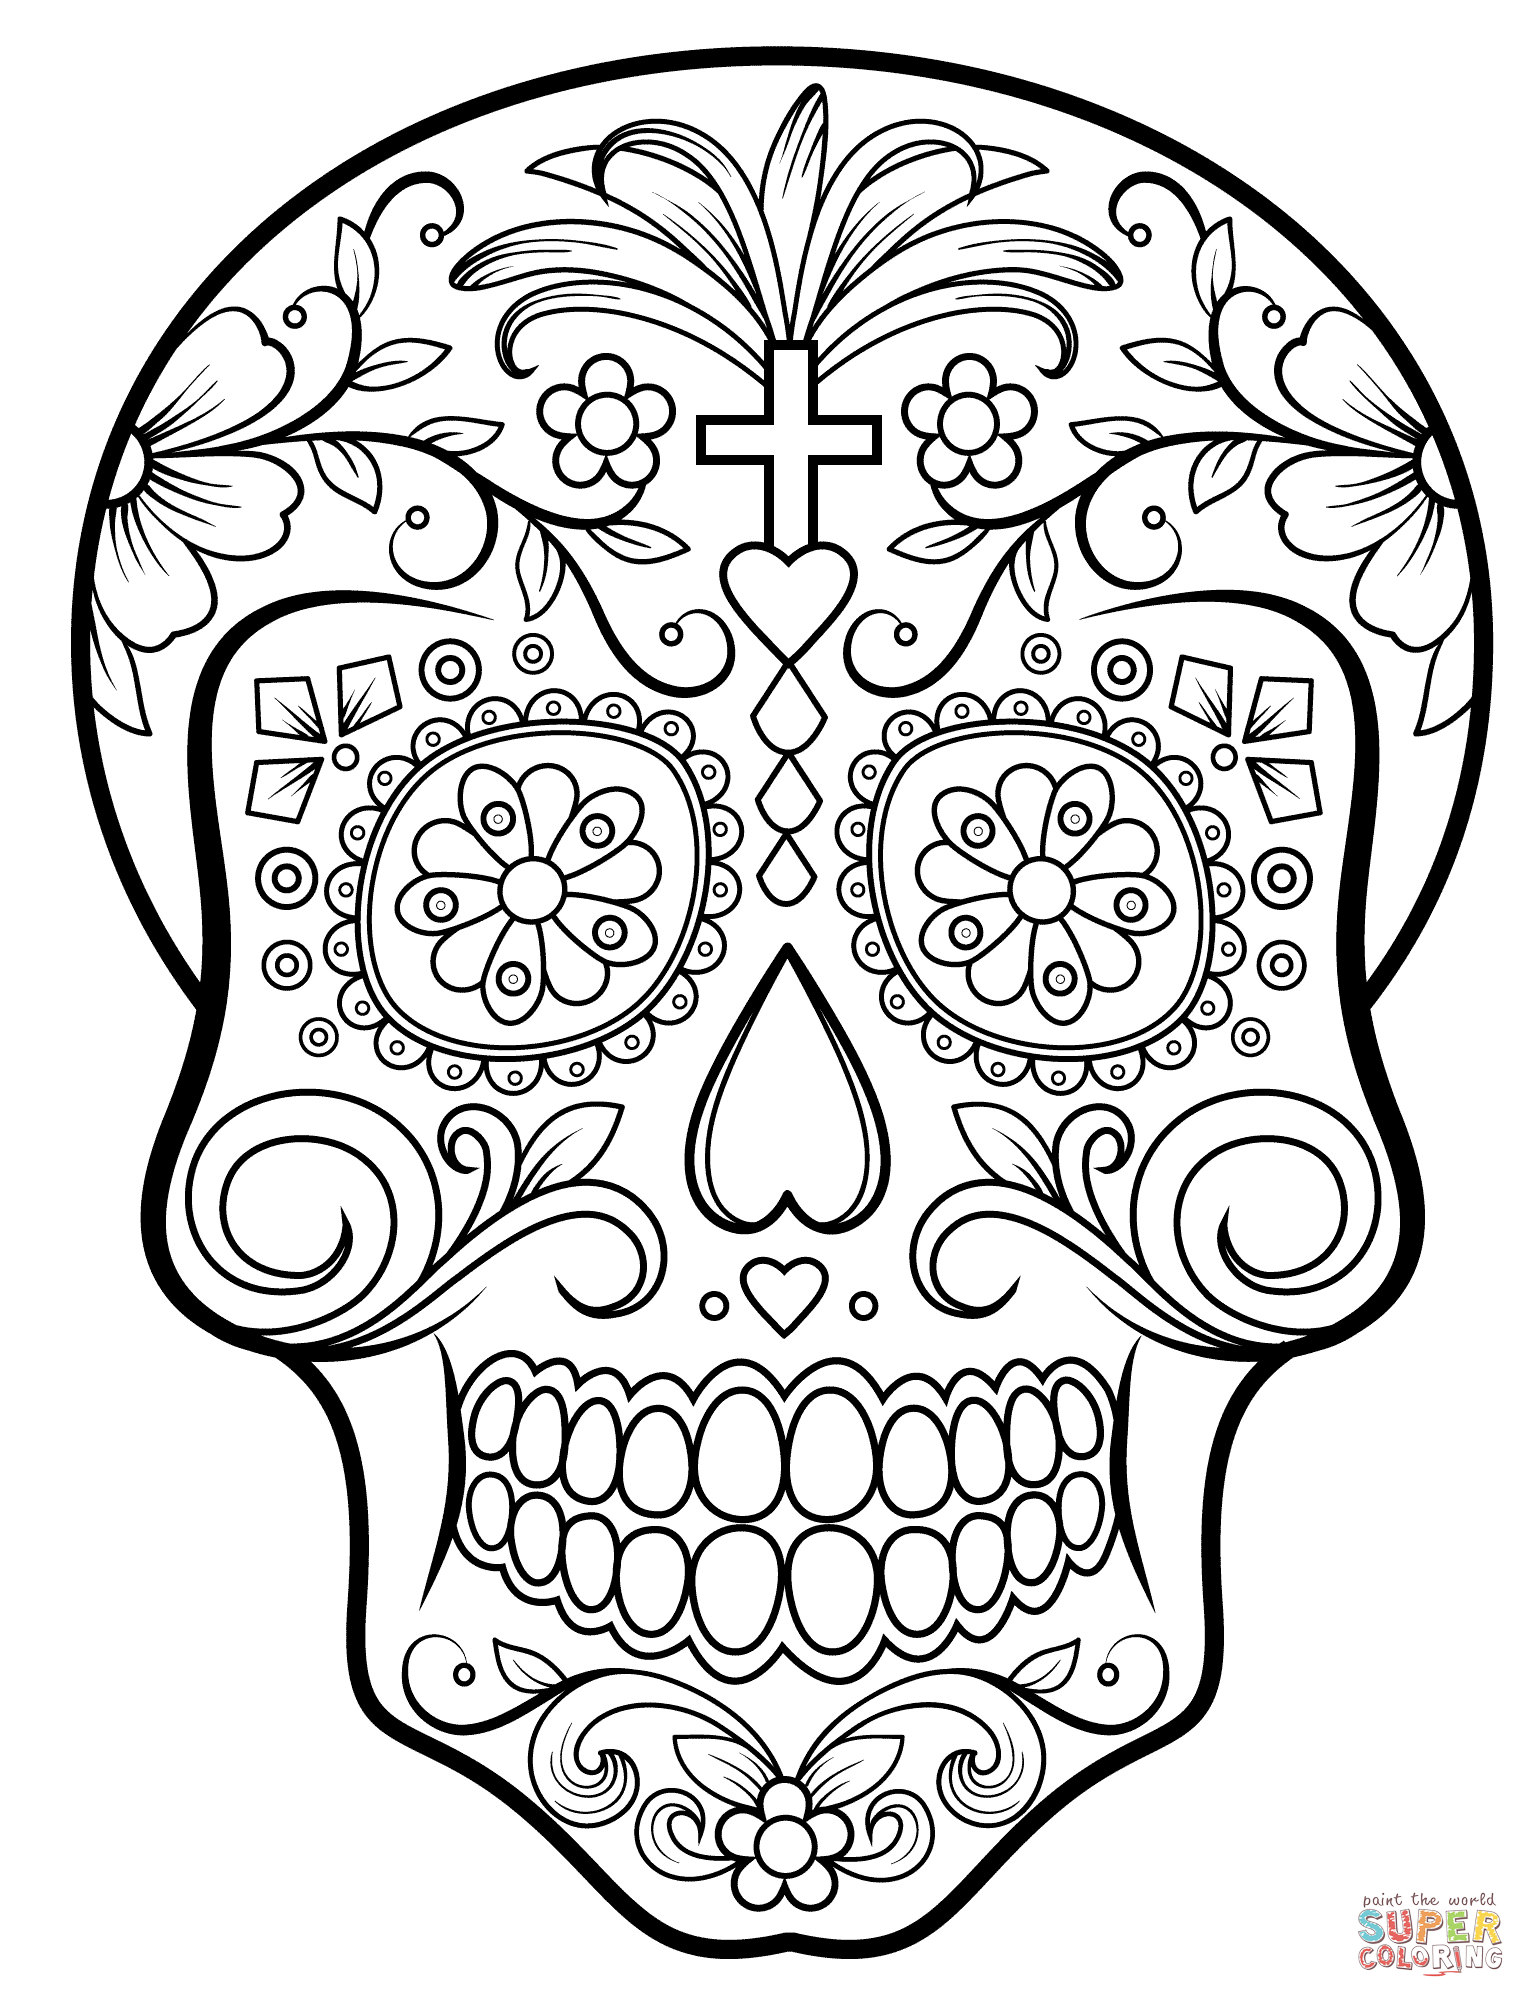 Skull Color Pages Sugar Skulls Coloring Pages Free Coloring Pages